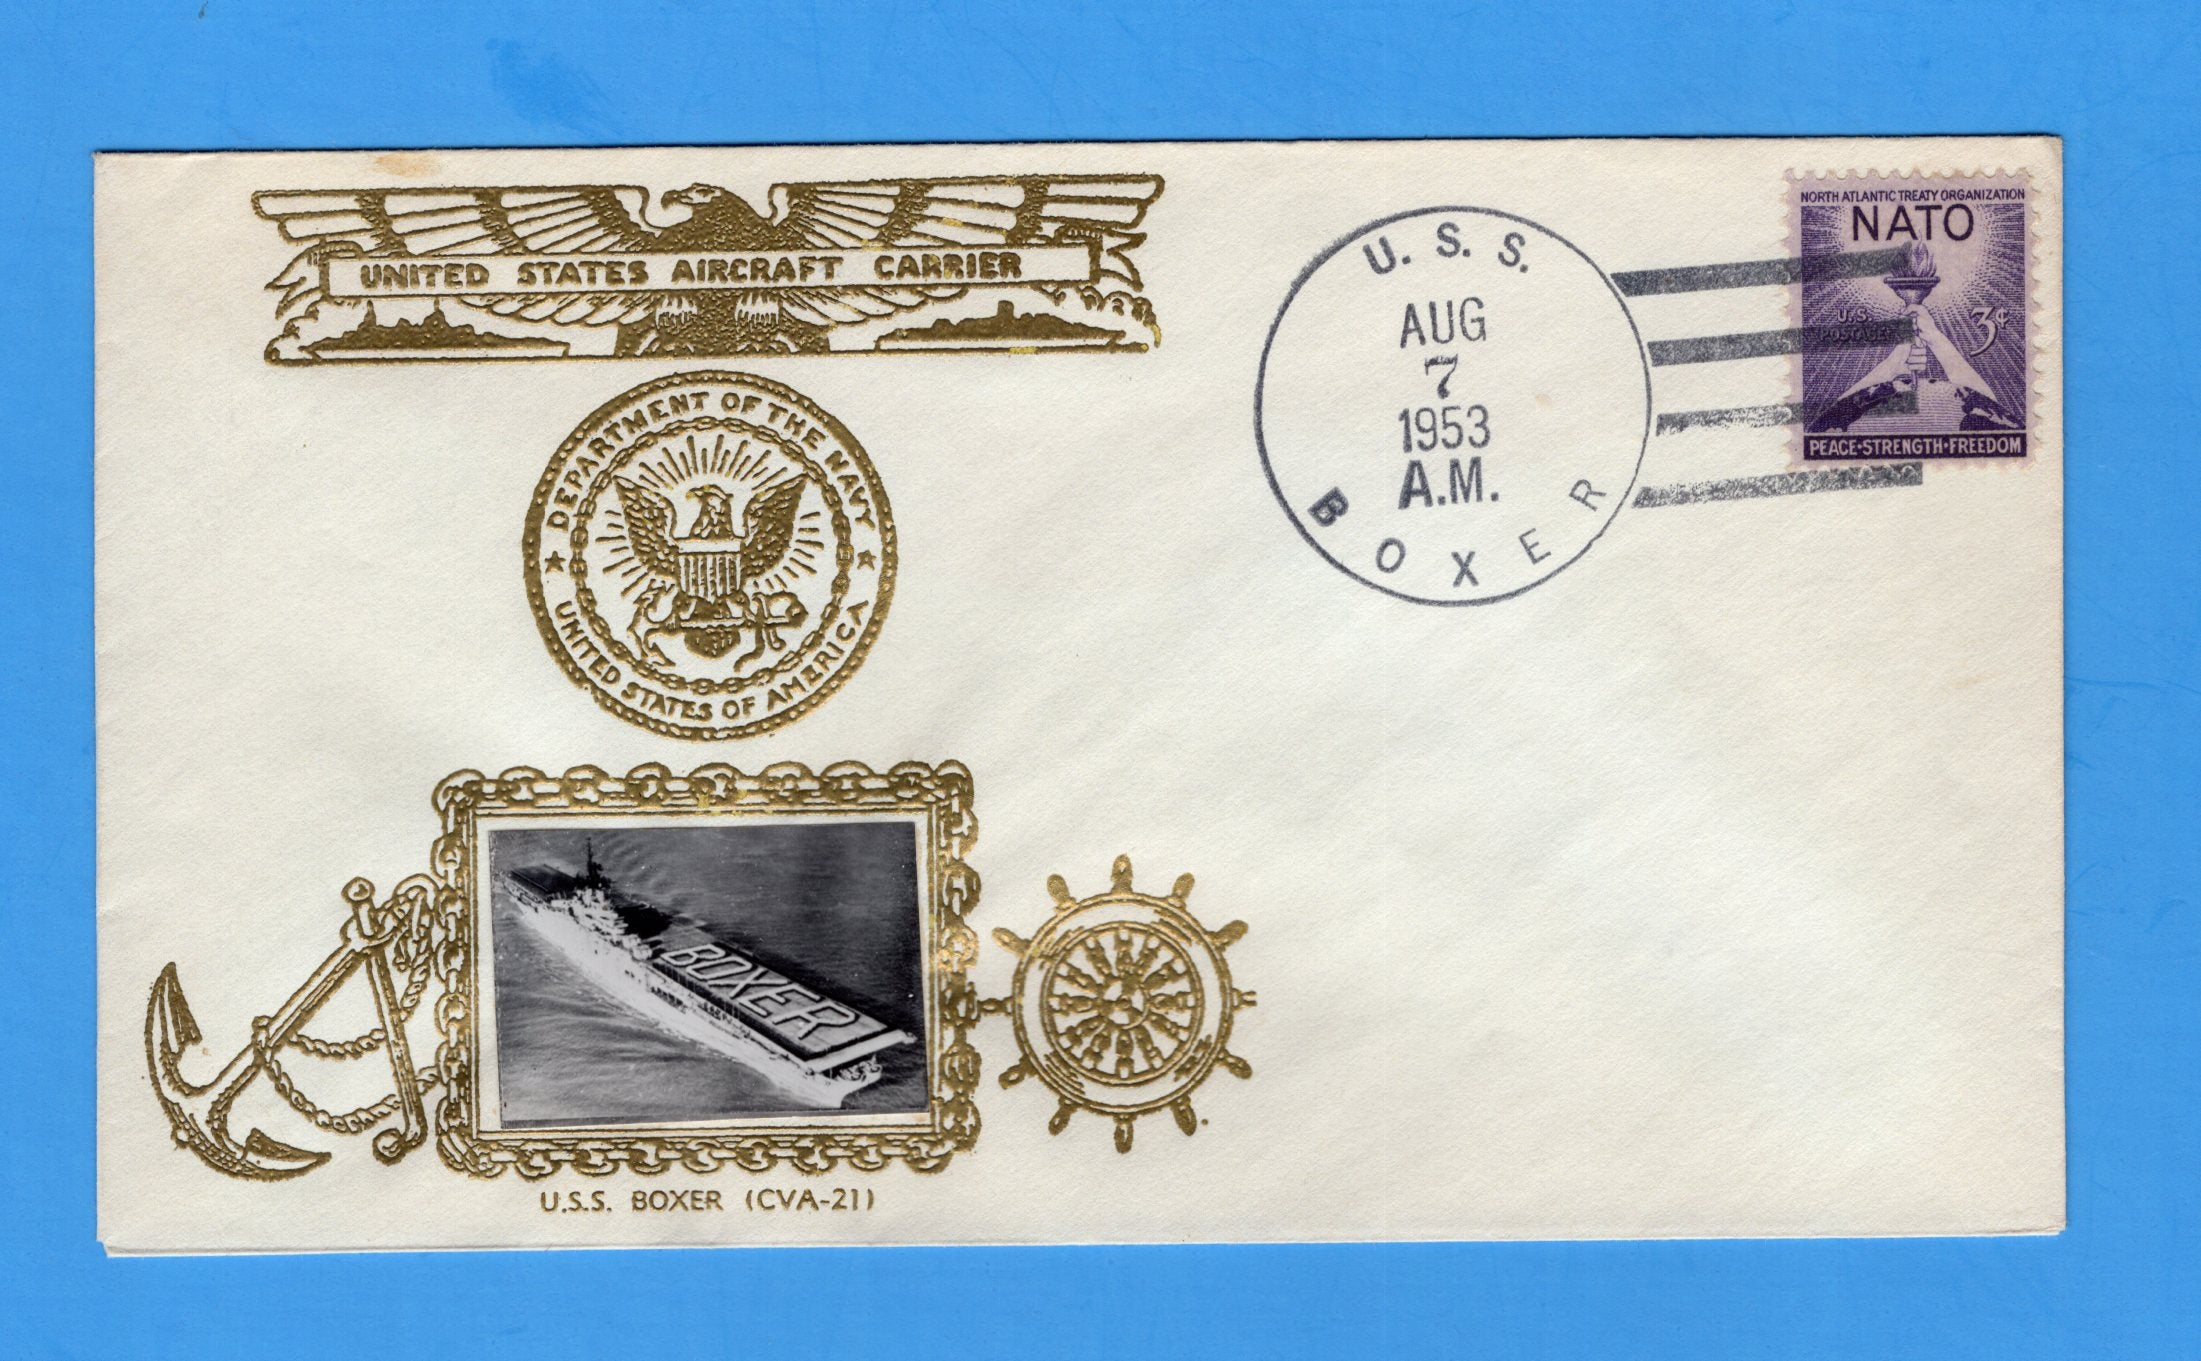 USS Boxer CVA-21 August 7, 1953 Raised Print Photo Cachet